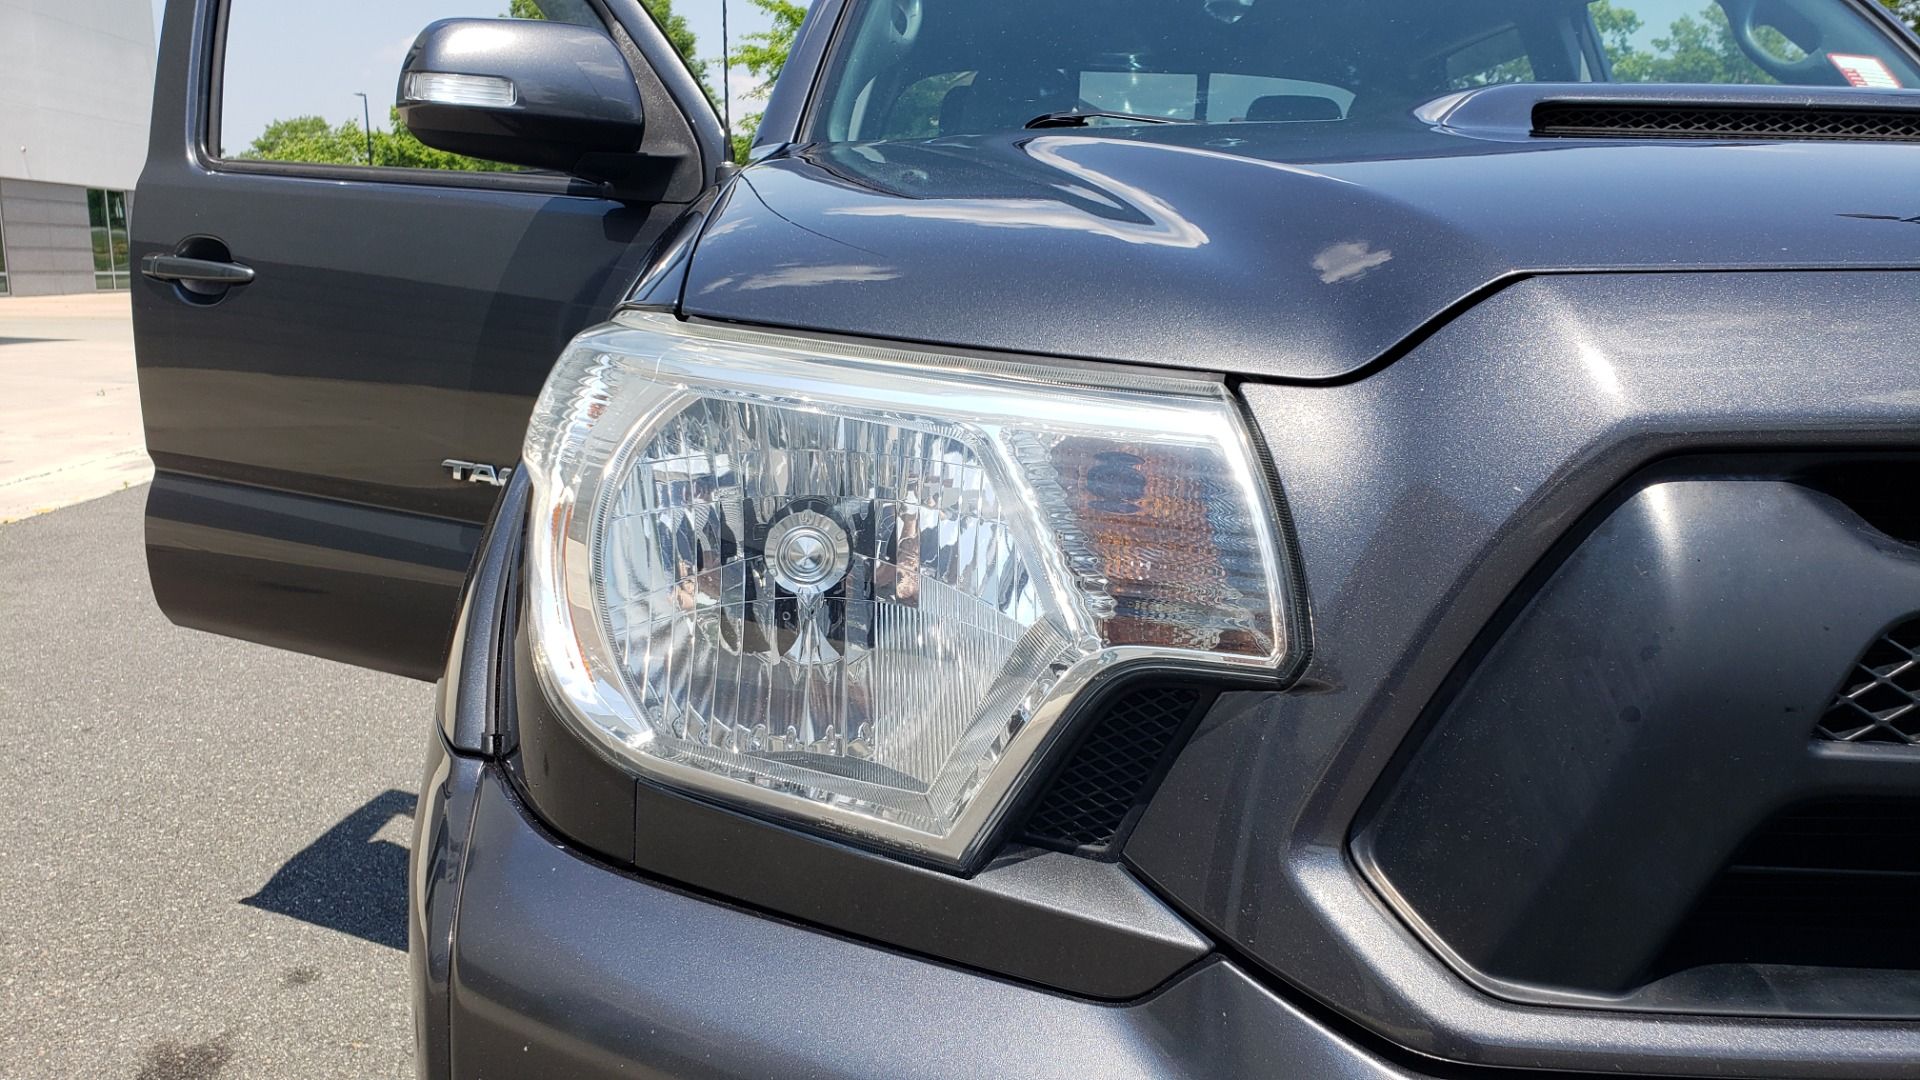 Used 2014 Toyota TACOMA PRERUNNER DOUBLECAB / TRD SPORT / V6 / 5-SPD AUTO / TOW PKG for sale $21,595 at Formula Imports in Charlotte NC 28227 19